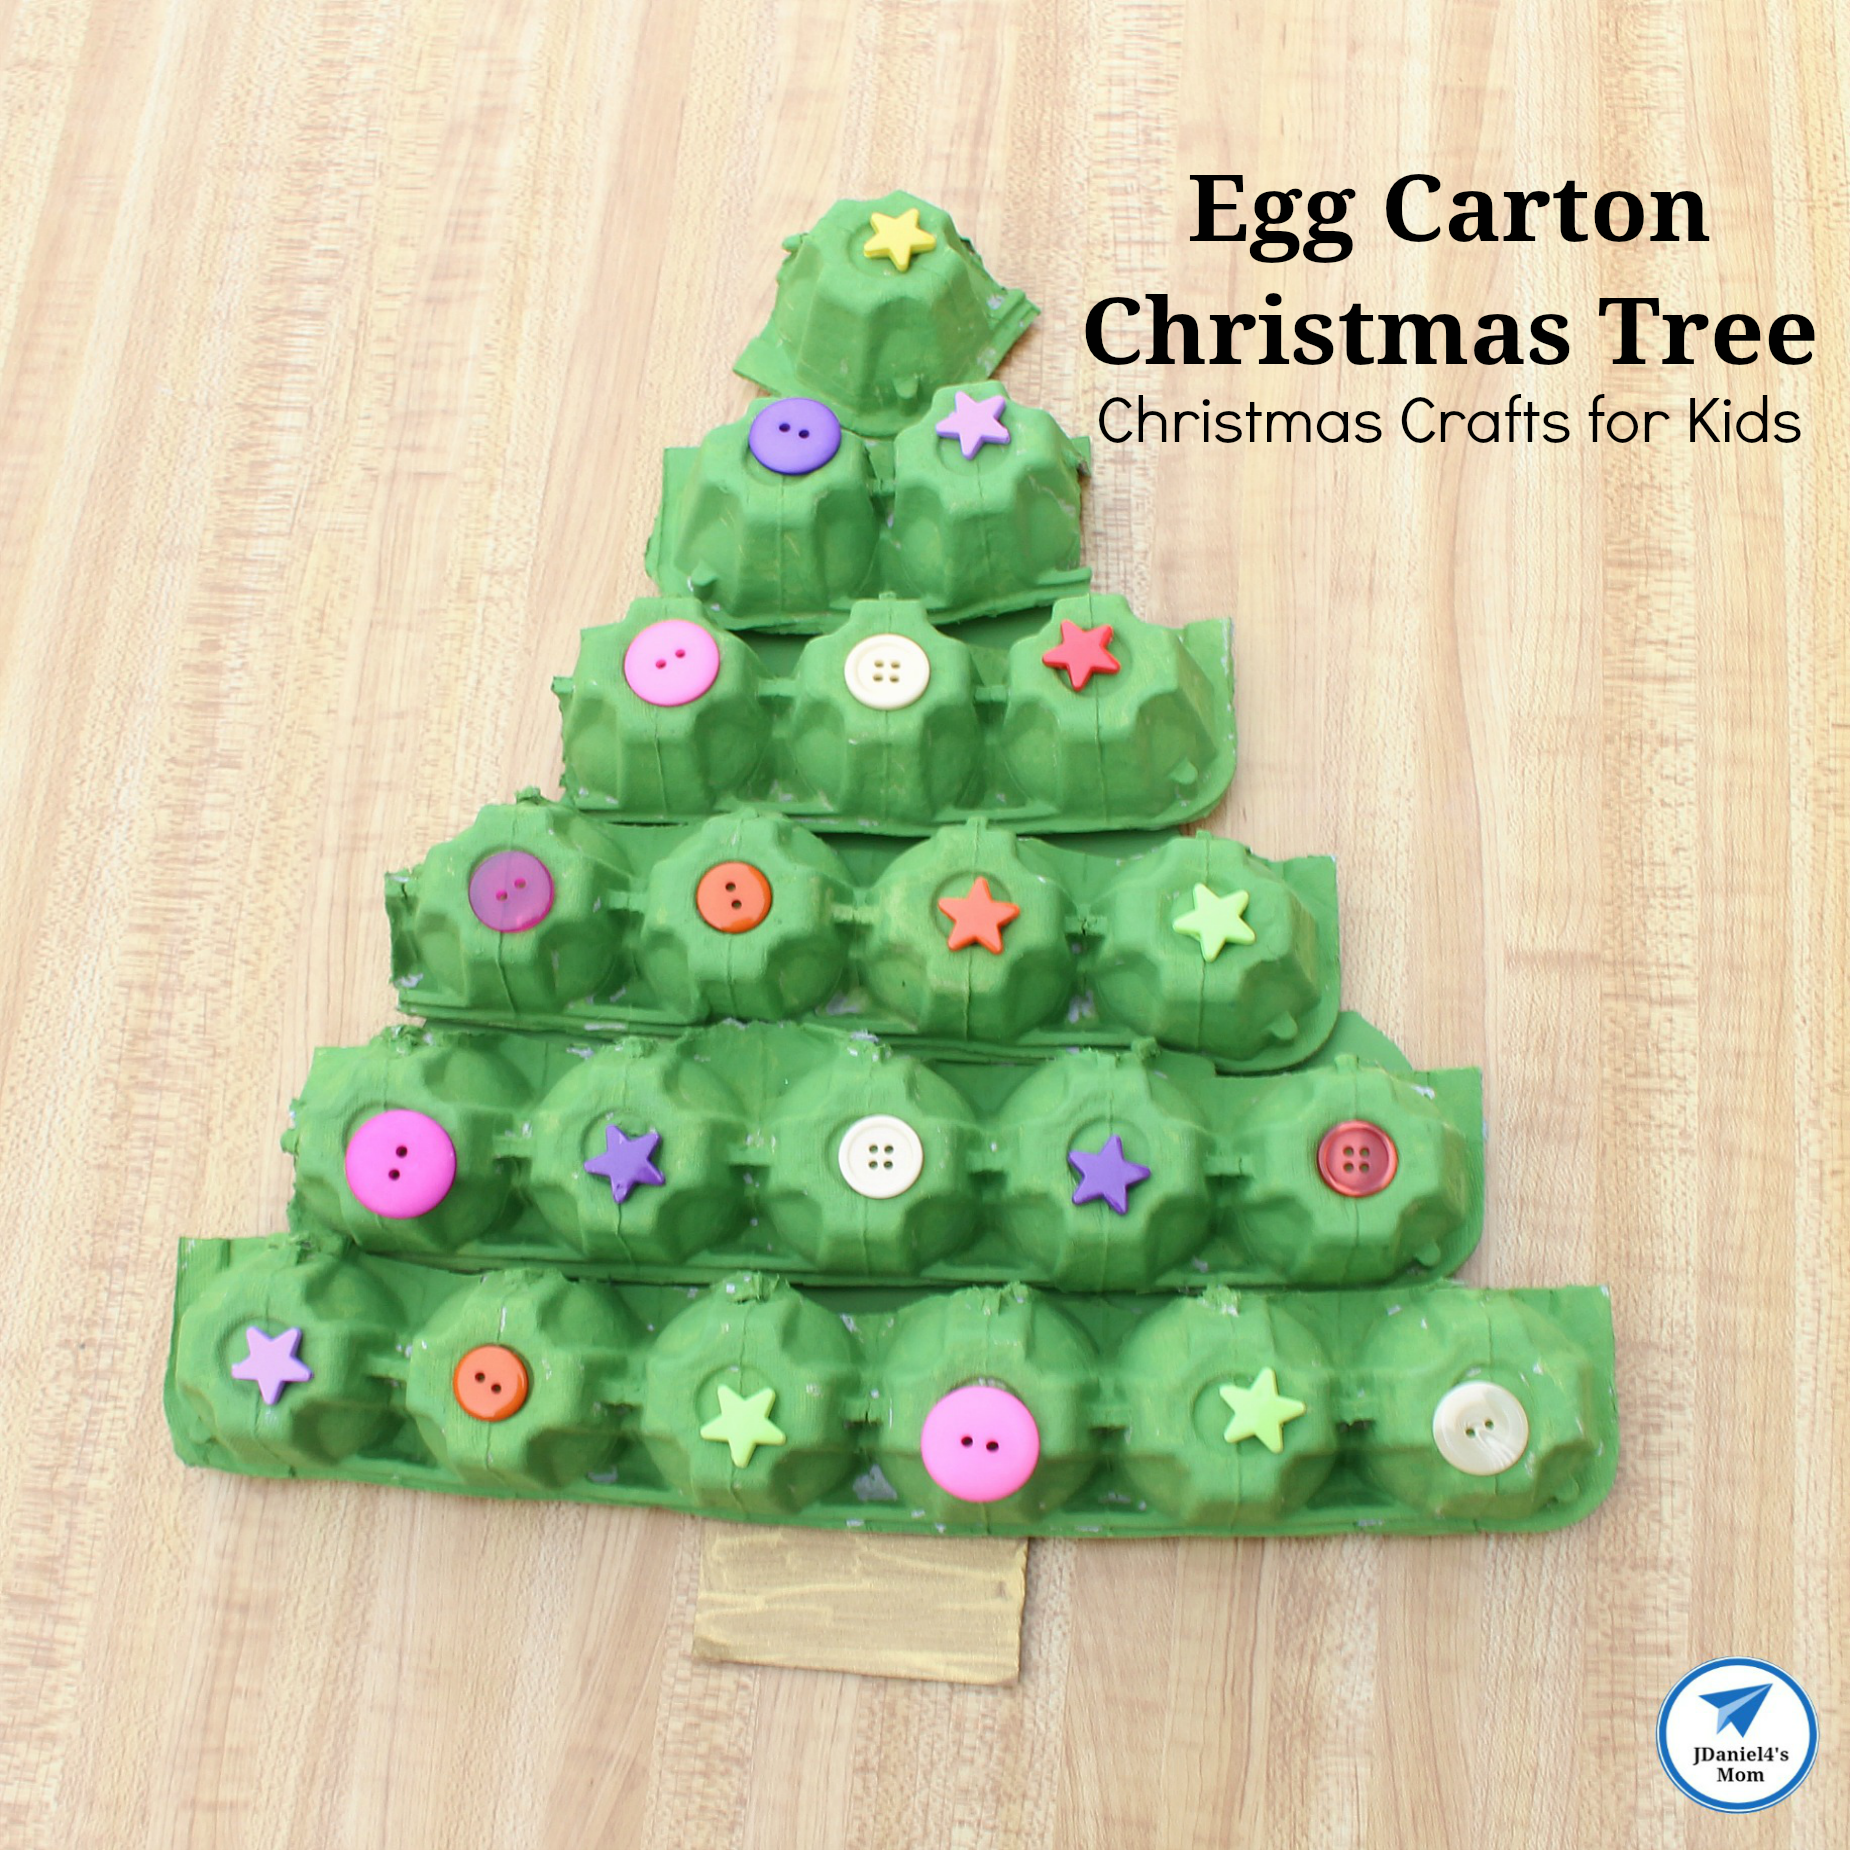 Christmas Crafts For Kids.Christmas Crafts For Kids Egg Carton Christmas Tree